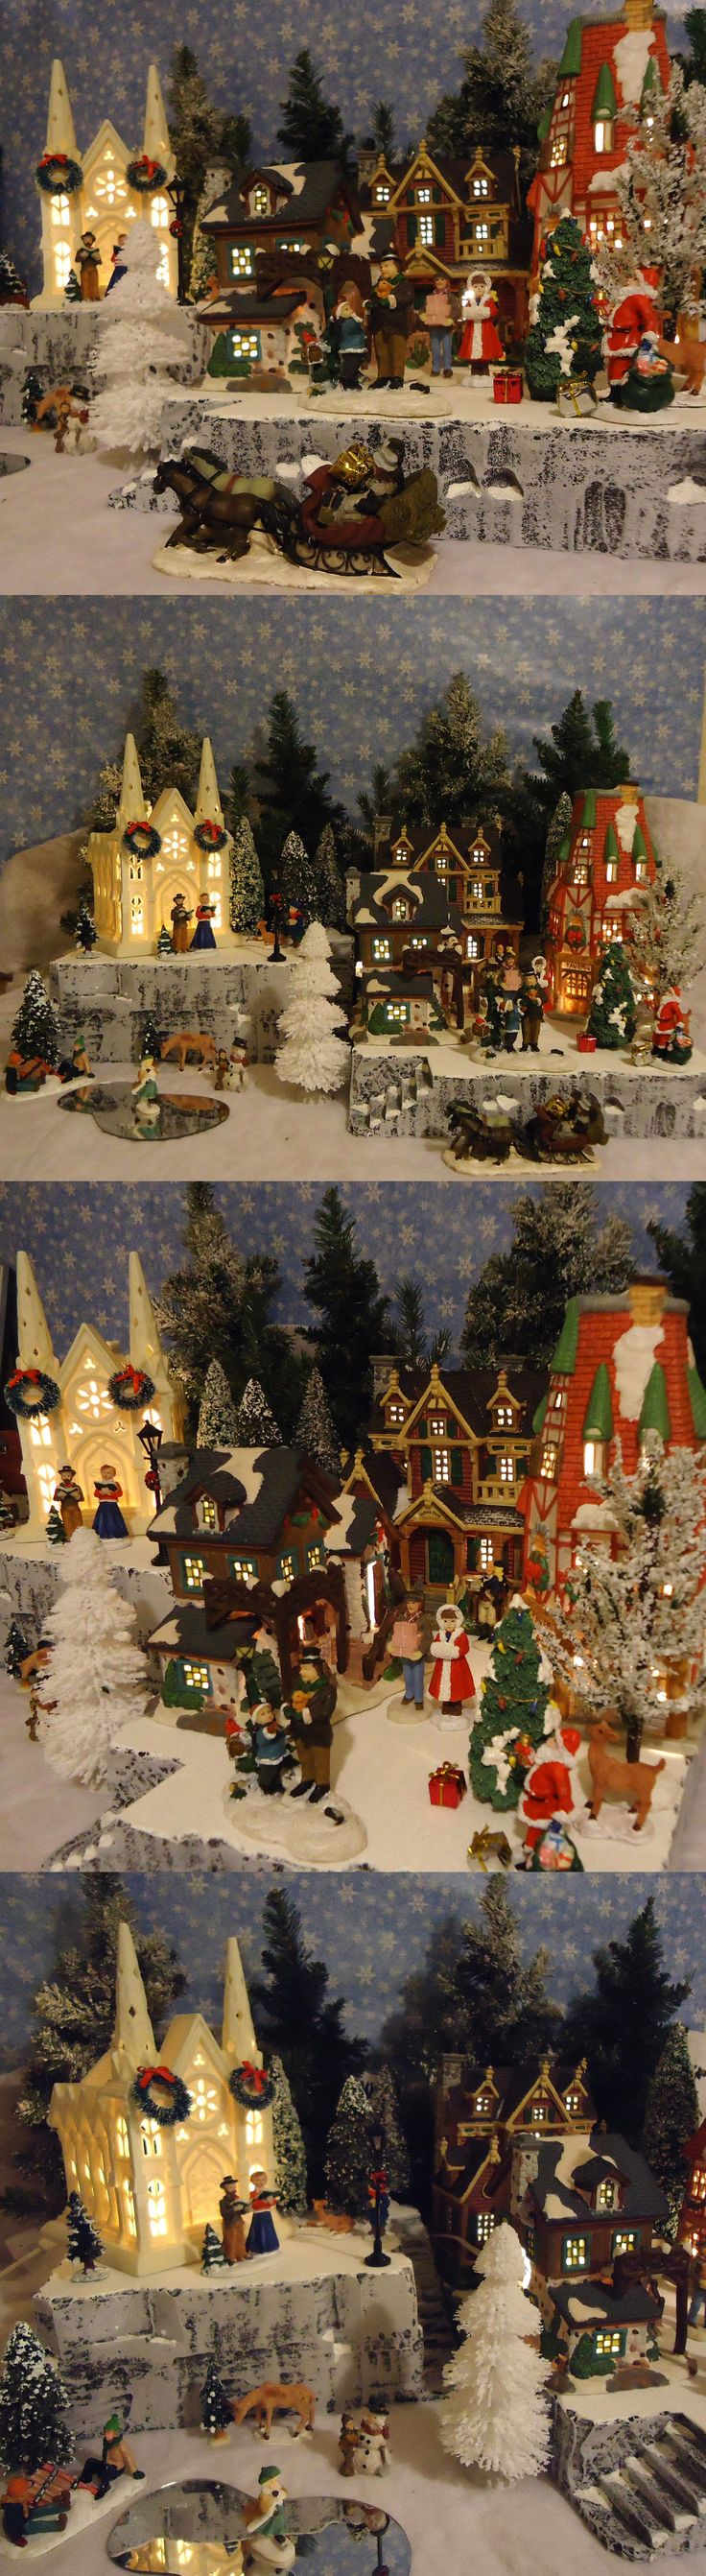 Christmas Collectible Department 56: Christmas Snow Village Display Platform Base Dept 56 Lemax St. Nicholas Square -> BUY IT NOW ONLY: $49.99 on eBay!